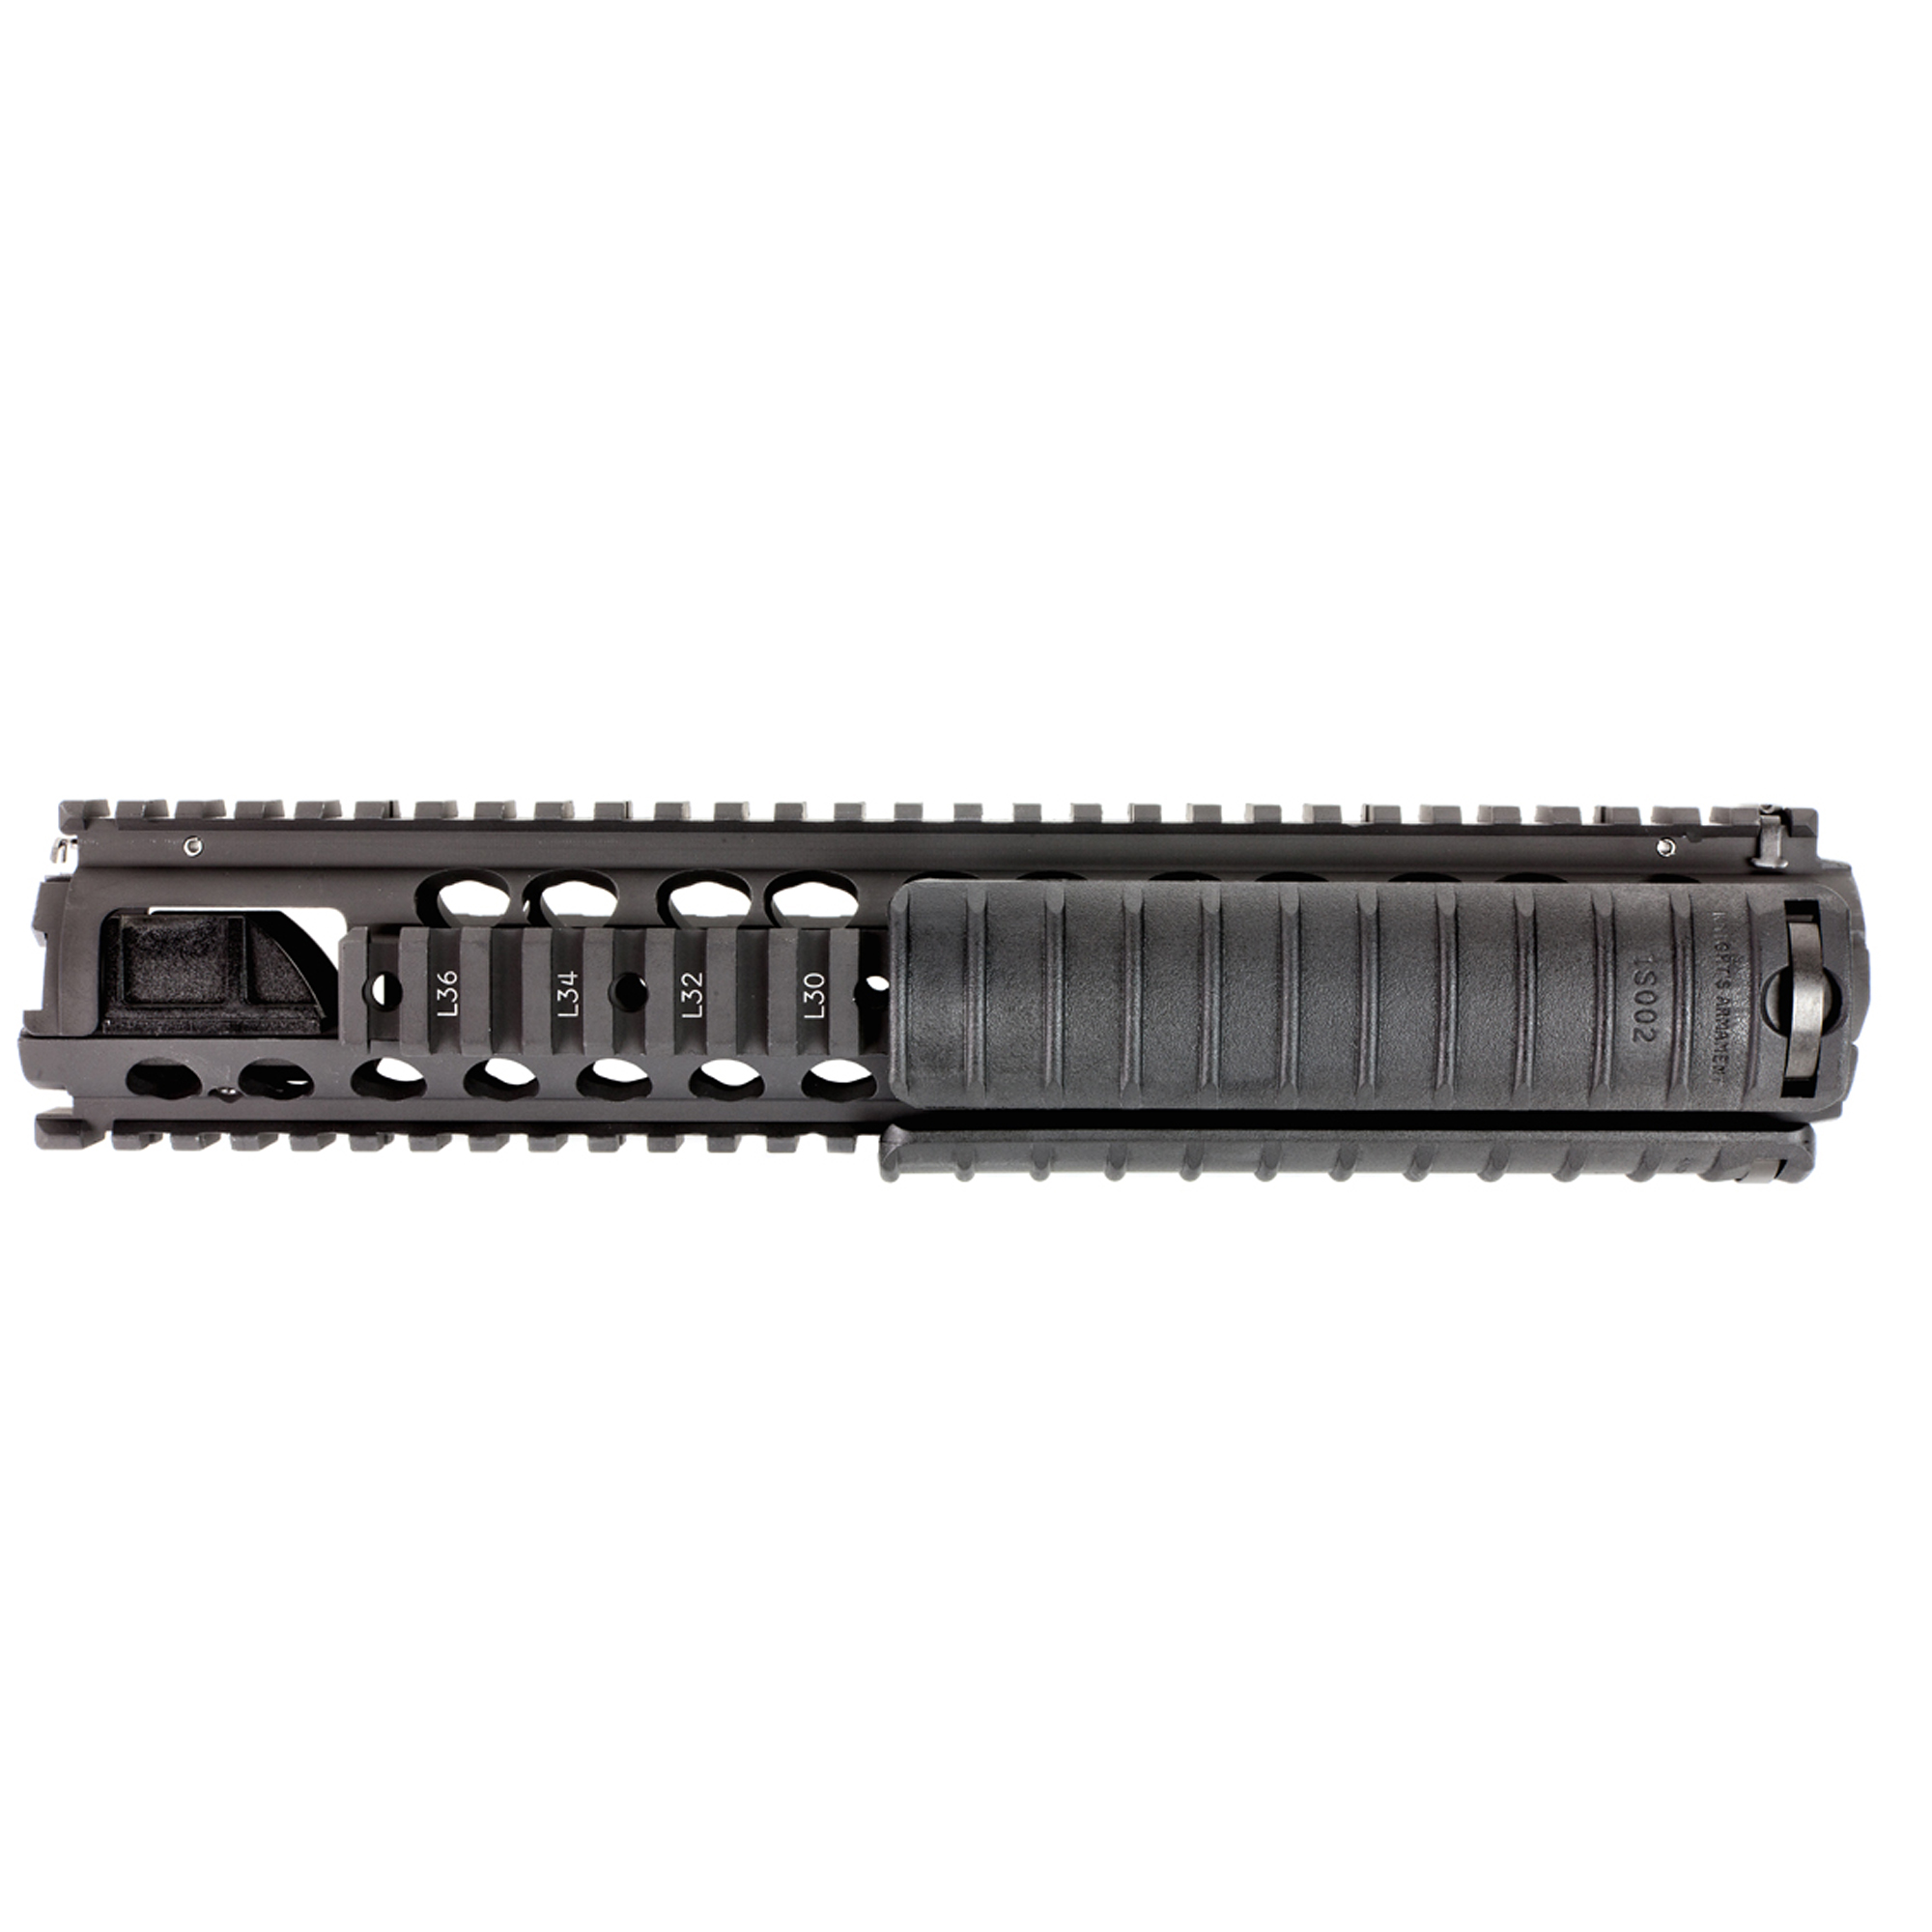 """Knights Armament Co.'s M5 RAS 11.5"""" (Rail Adapter System) was developed for use on the US military's M16A4"""" and with hundreds of thousands of rails issued to date"""" it is one of the most battle proven designs available for the AR-15 platform. This non-free float handguard is a simple-to-install"""" drop-in upgrade that features genuine Mil-Spec M1913 Picatinny Rails along its entire length. What sets the M5 RAS apart from other 2-piece quad rails on the market is that it securely locks to the rifle's barrel nut via a clamp and screw arrangement"""" making it a very solid foundation upon which to mount tactical accessories. Includes three KAC 11 Rib Rail Panels. The M5 RAS is a drop-in replacement part for standard"""" 2-piece polymer"""" A2-type handguards. The rifle must have a rifle length gas system"""" delta ring assembly"""" fixed front sight/gas block"""" and either a round or triangular handguard end cap. Lighter barrel profiles work best (Government contours). Heavier barrel contours may require modification to the inside of the rail. For AR-15/SR-15 based platforms only; not compatible with SR-25 variants. Installation instructions are included. Aluminum black finish."""